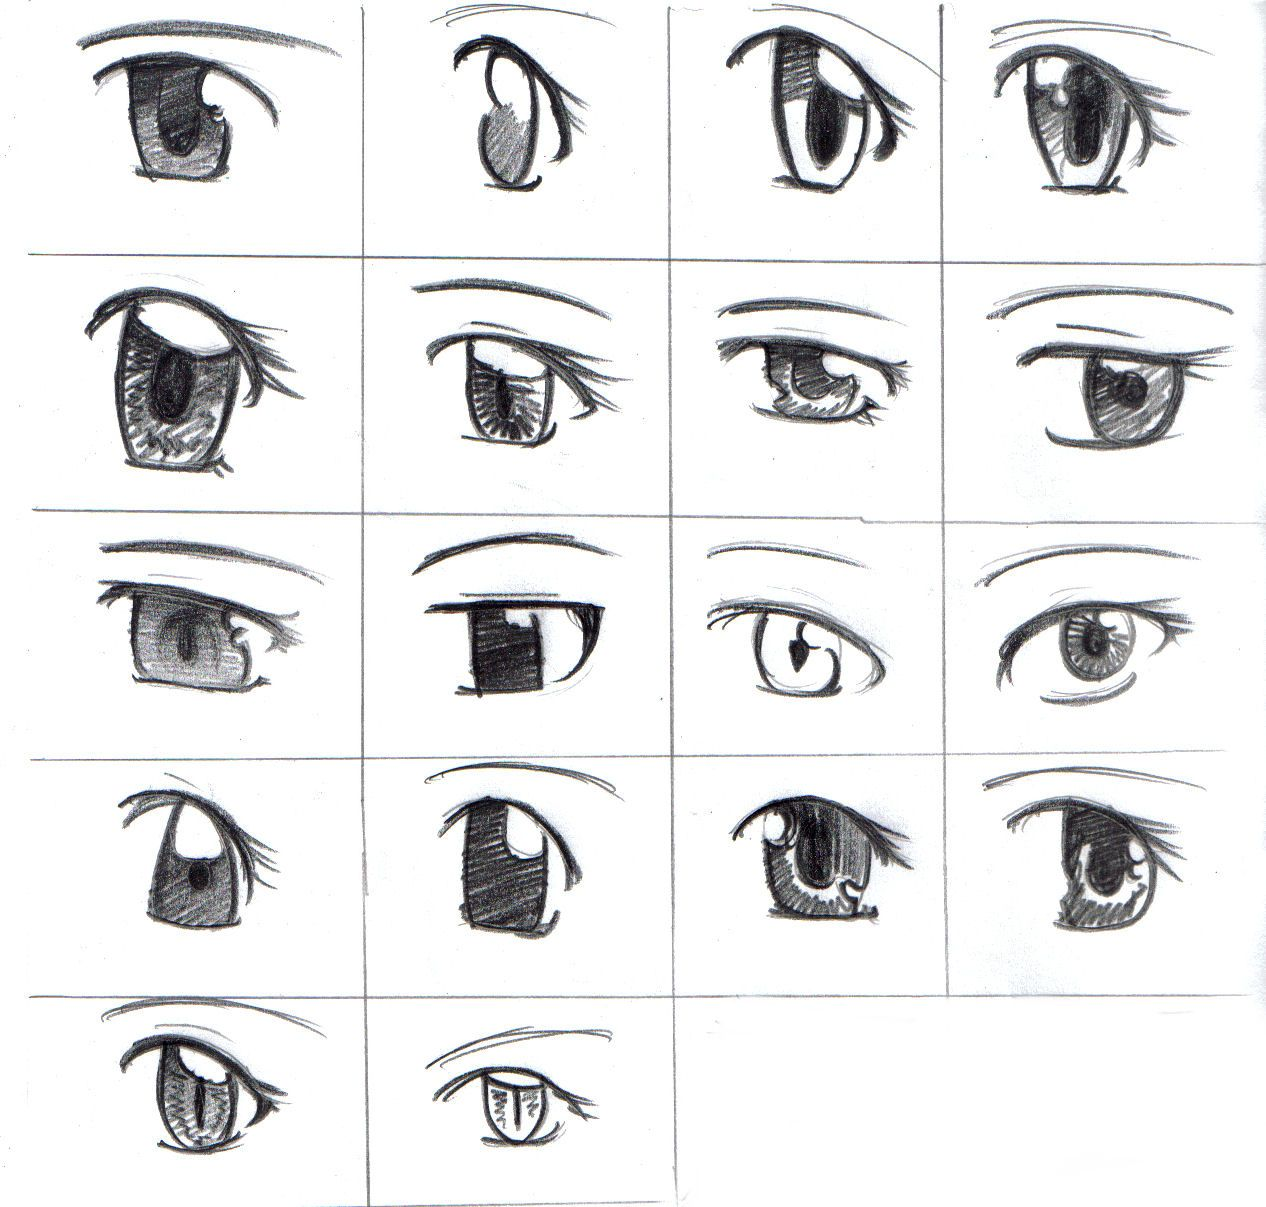 How to draw anime eyes This image show some examples of